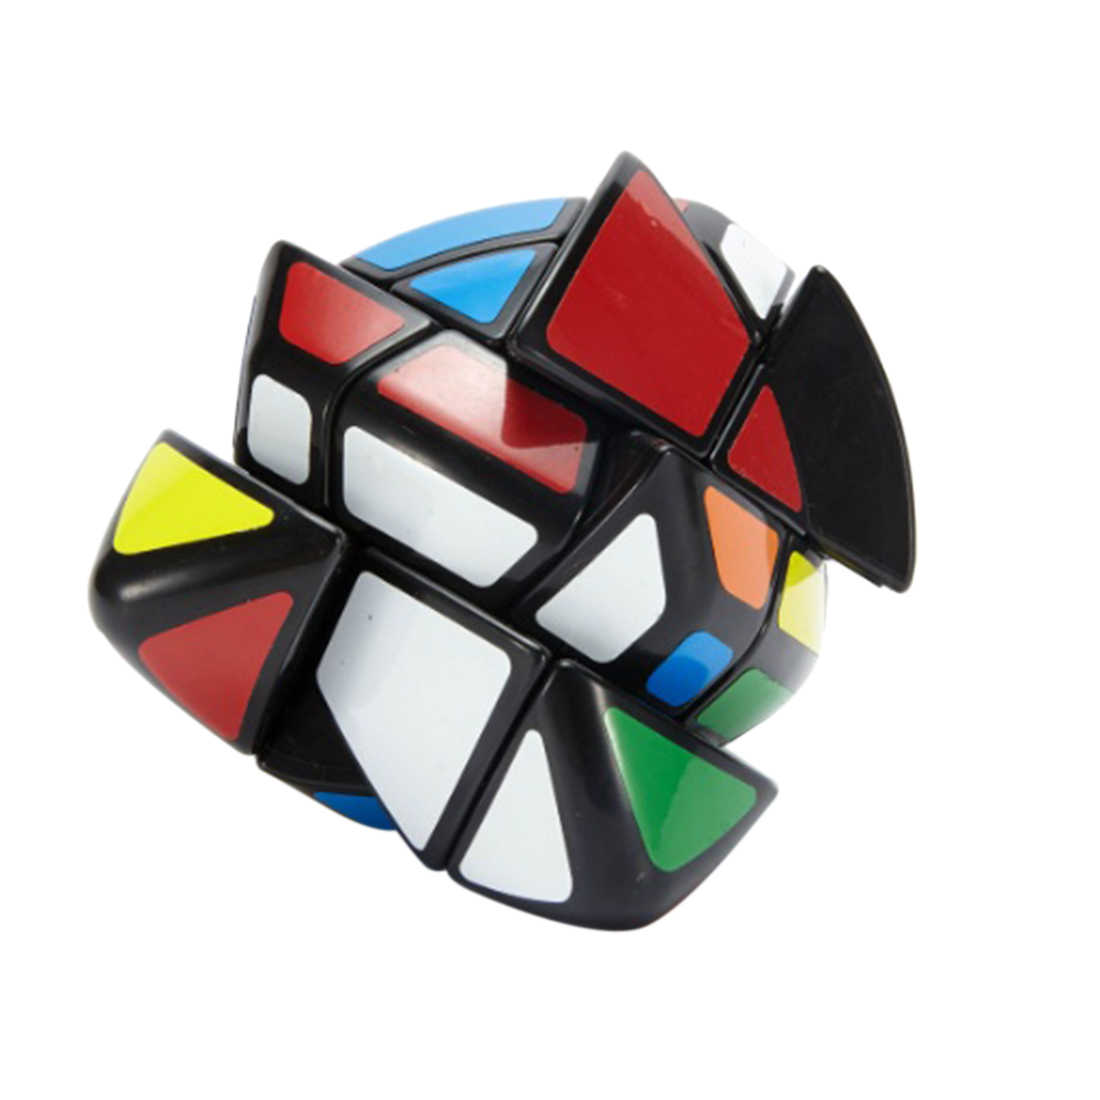 Surwish Six Axis Rhombohedron Magic Cube Magico Cubo Education Toys For  Children Adults Gift